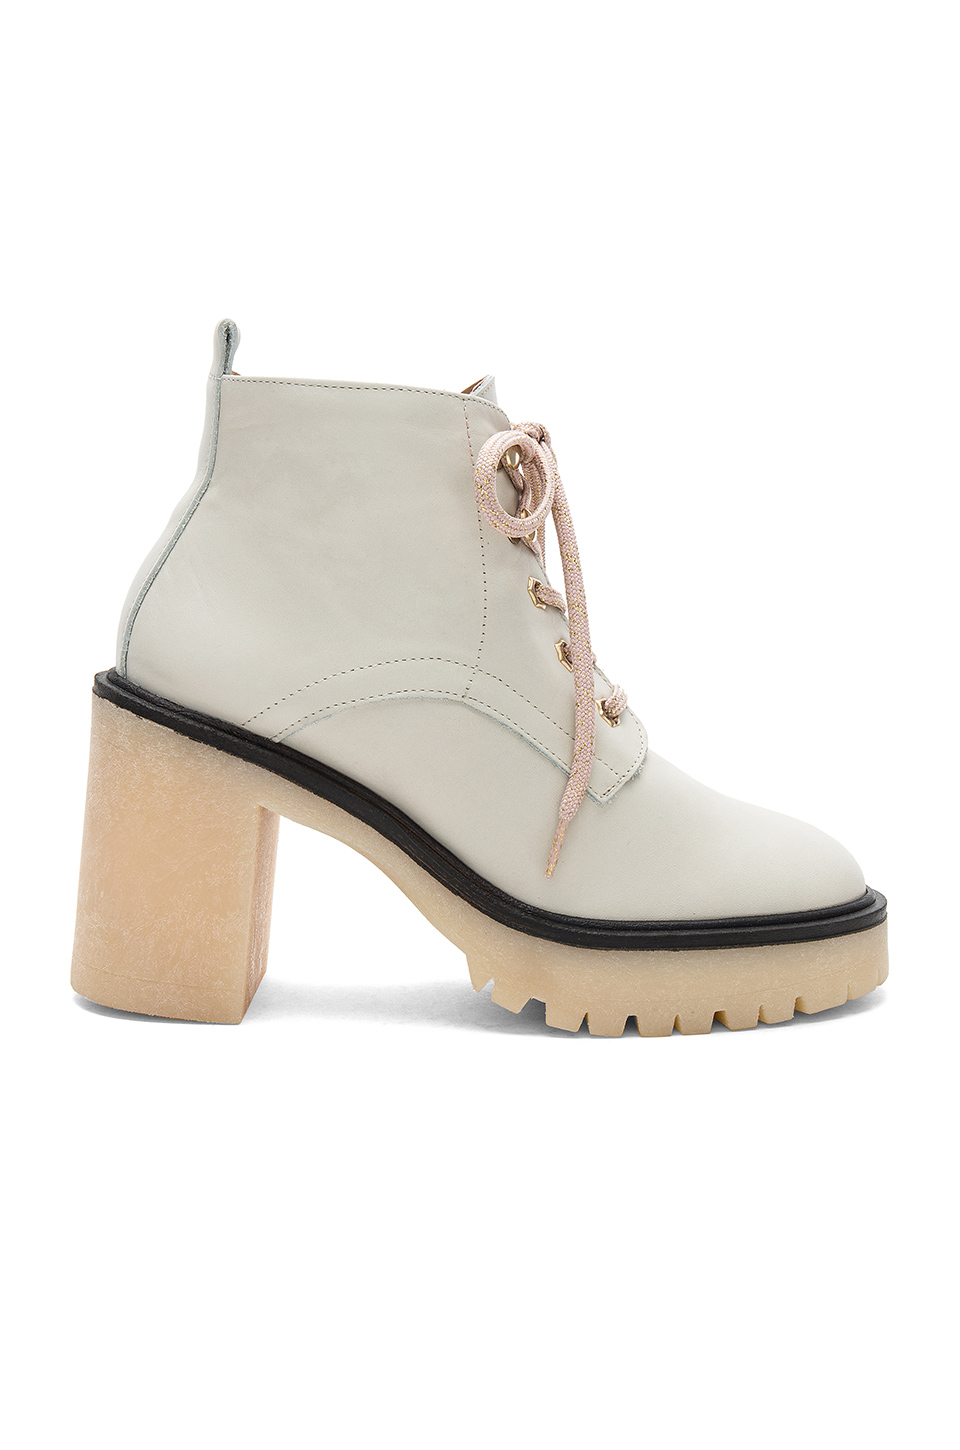 Free People Sydney Hiker Boot in White